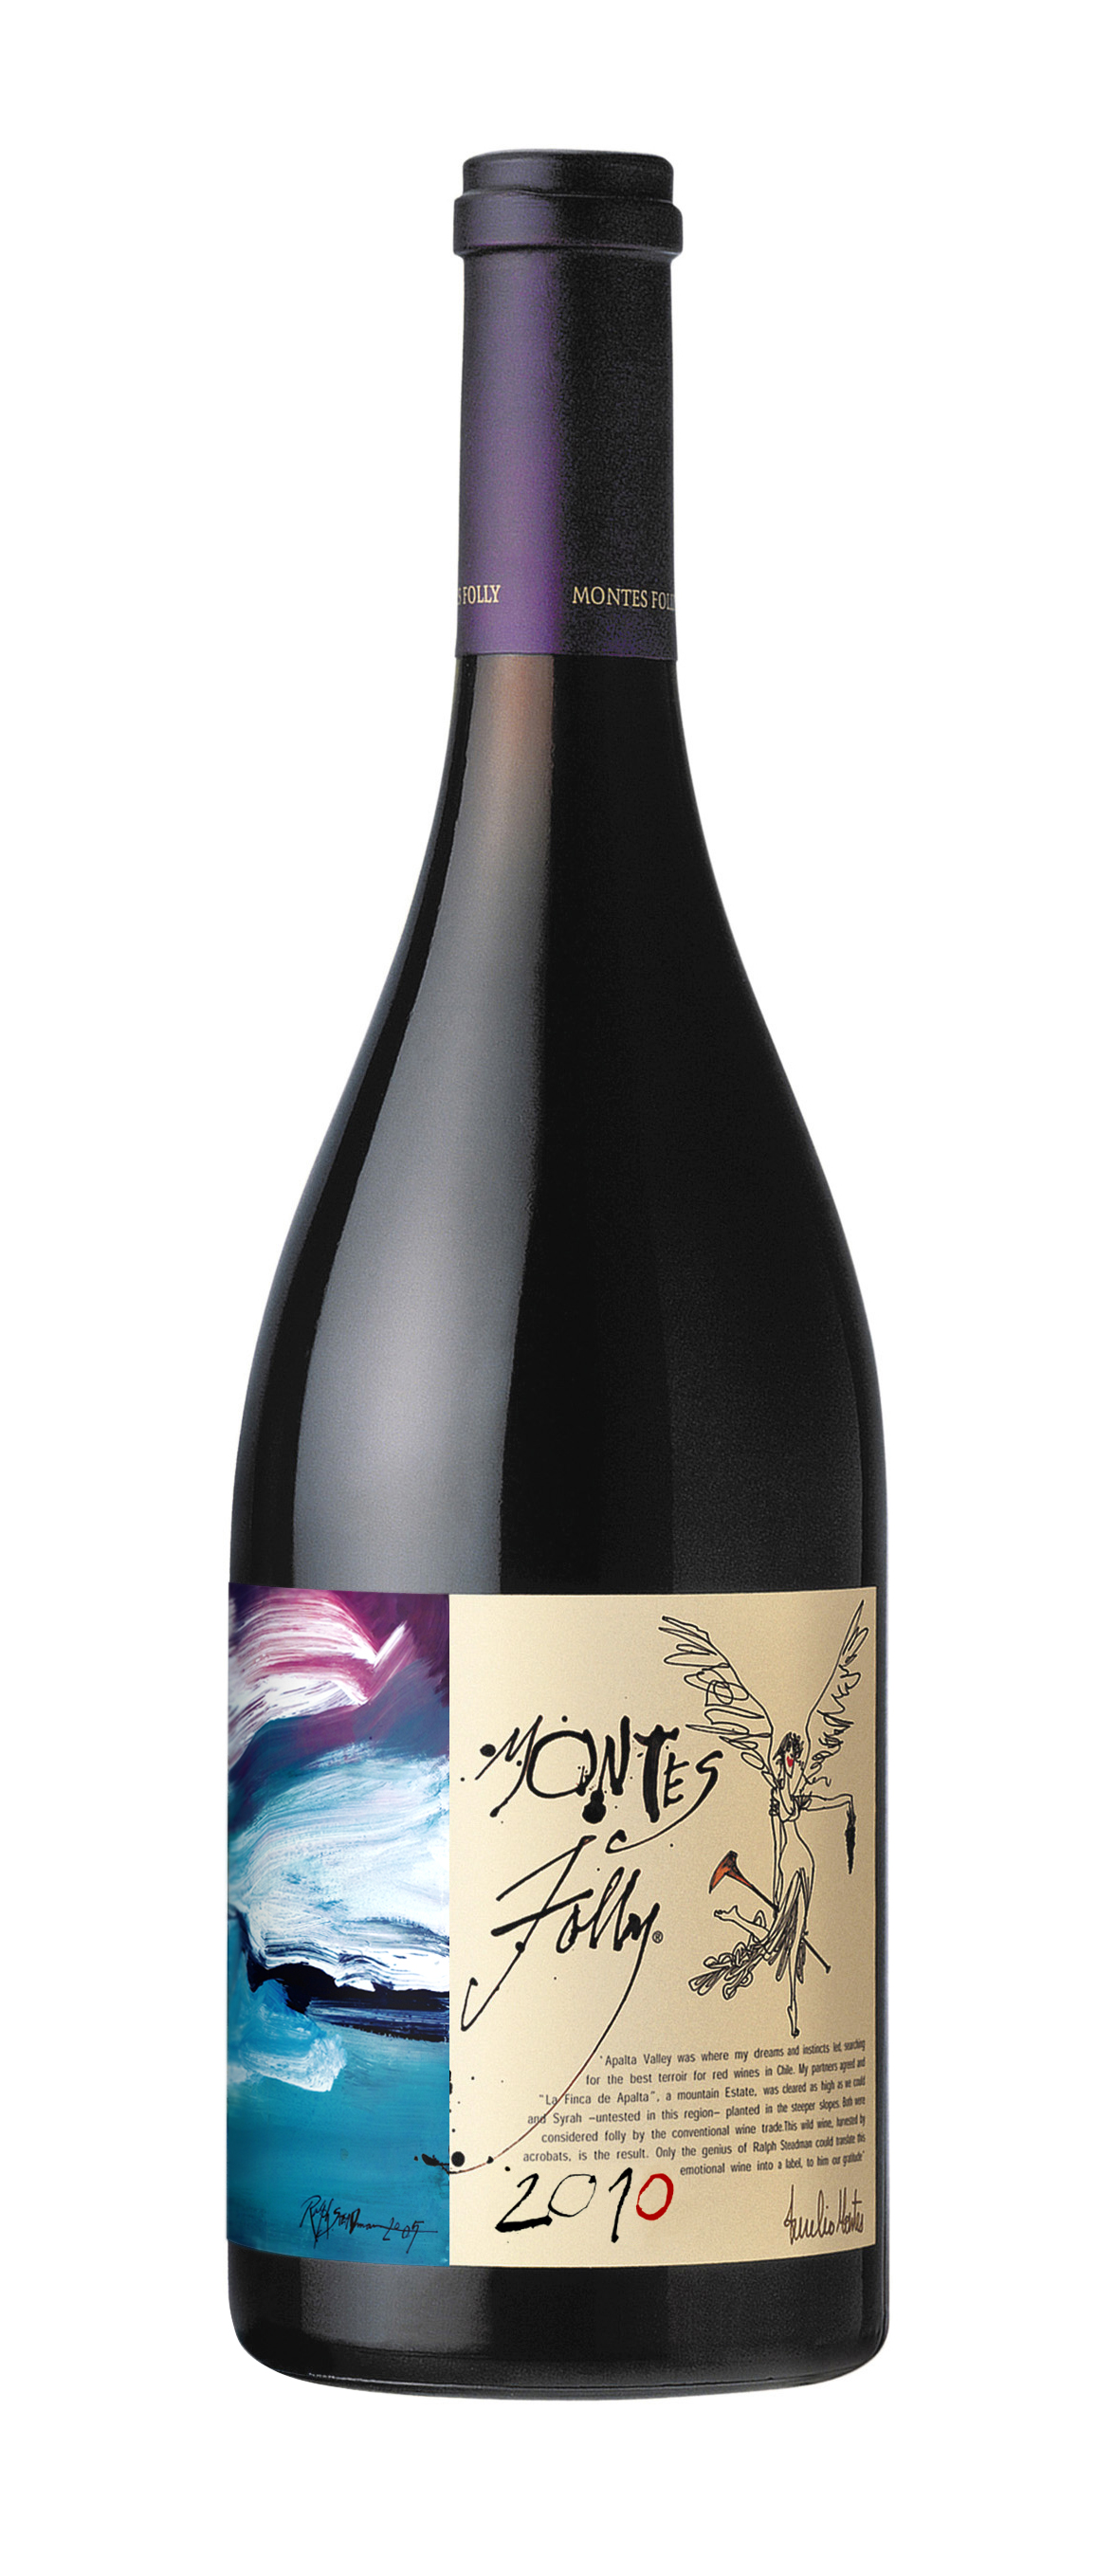 Montes Folly Syrah